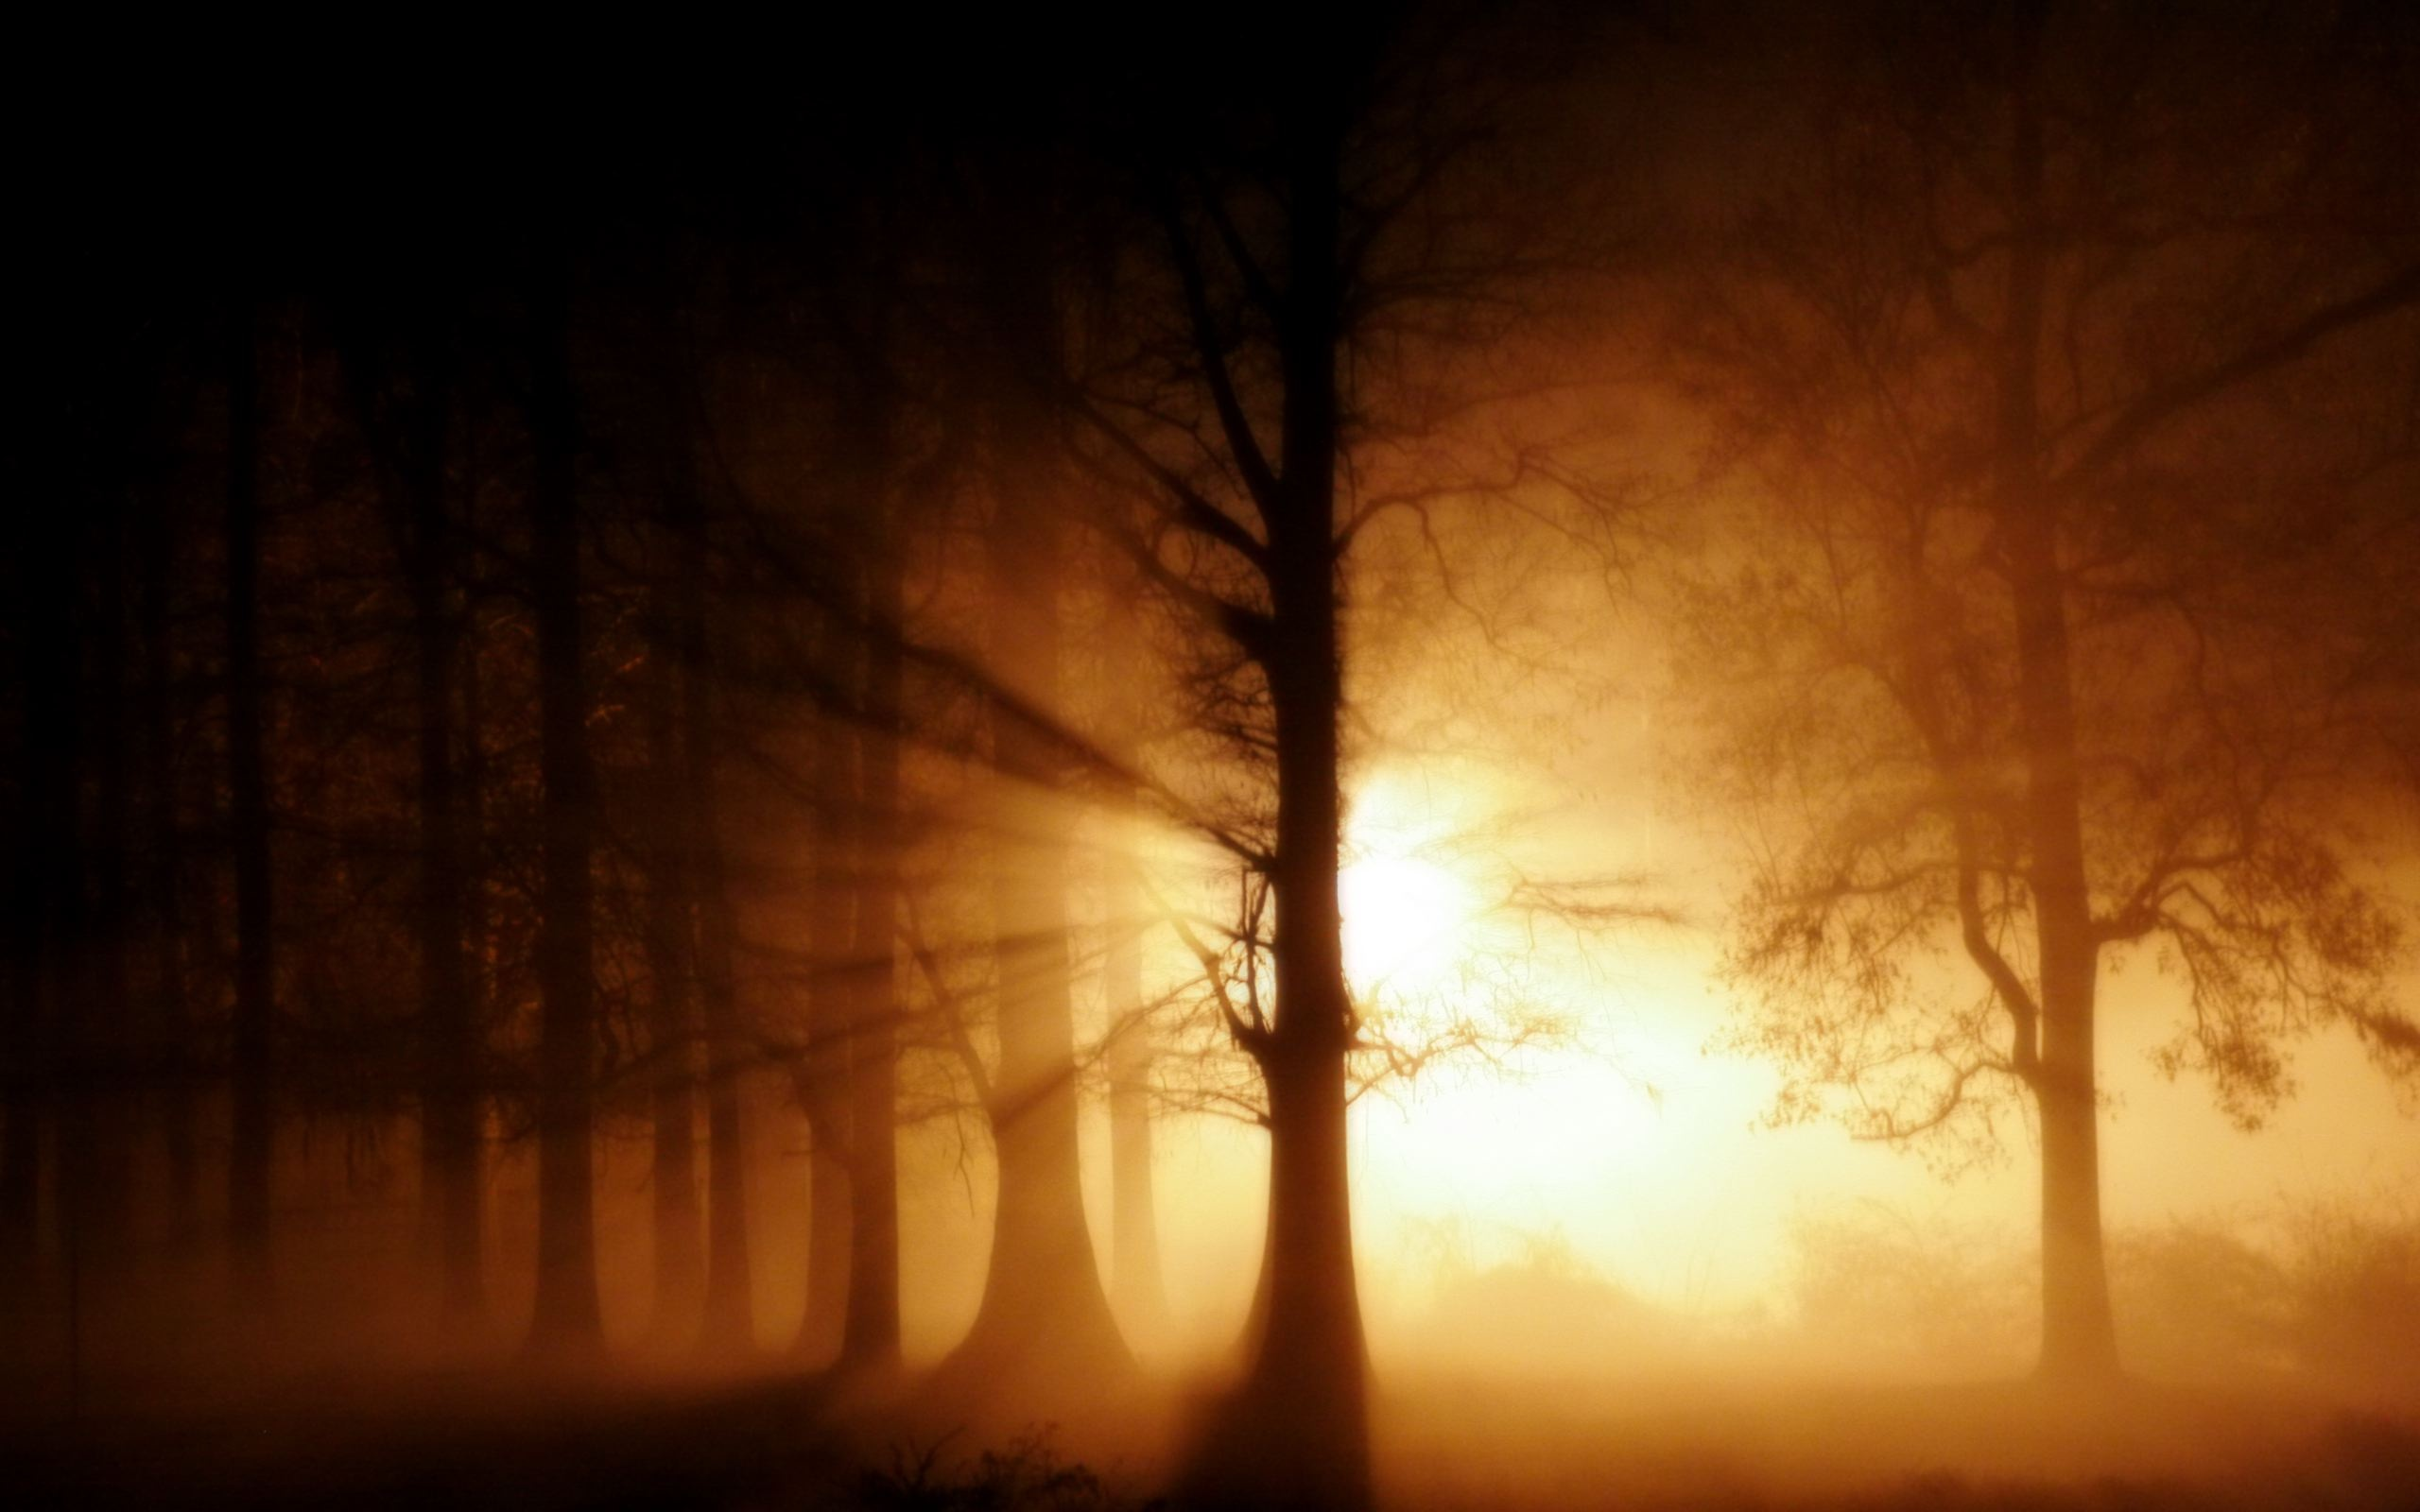 Foggy Forest Wallpaper by Amystikal   HQ Wallpapers download 100 2560x1600